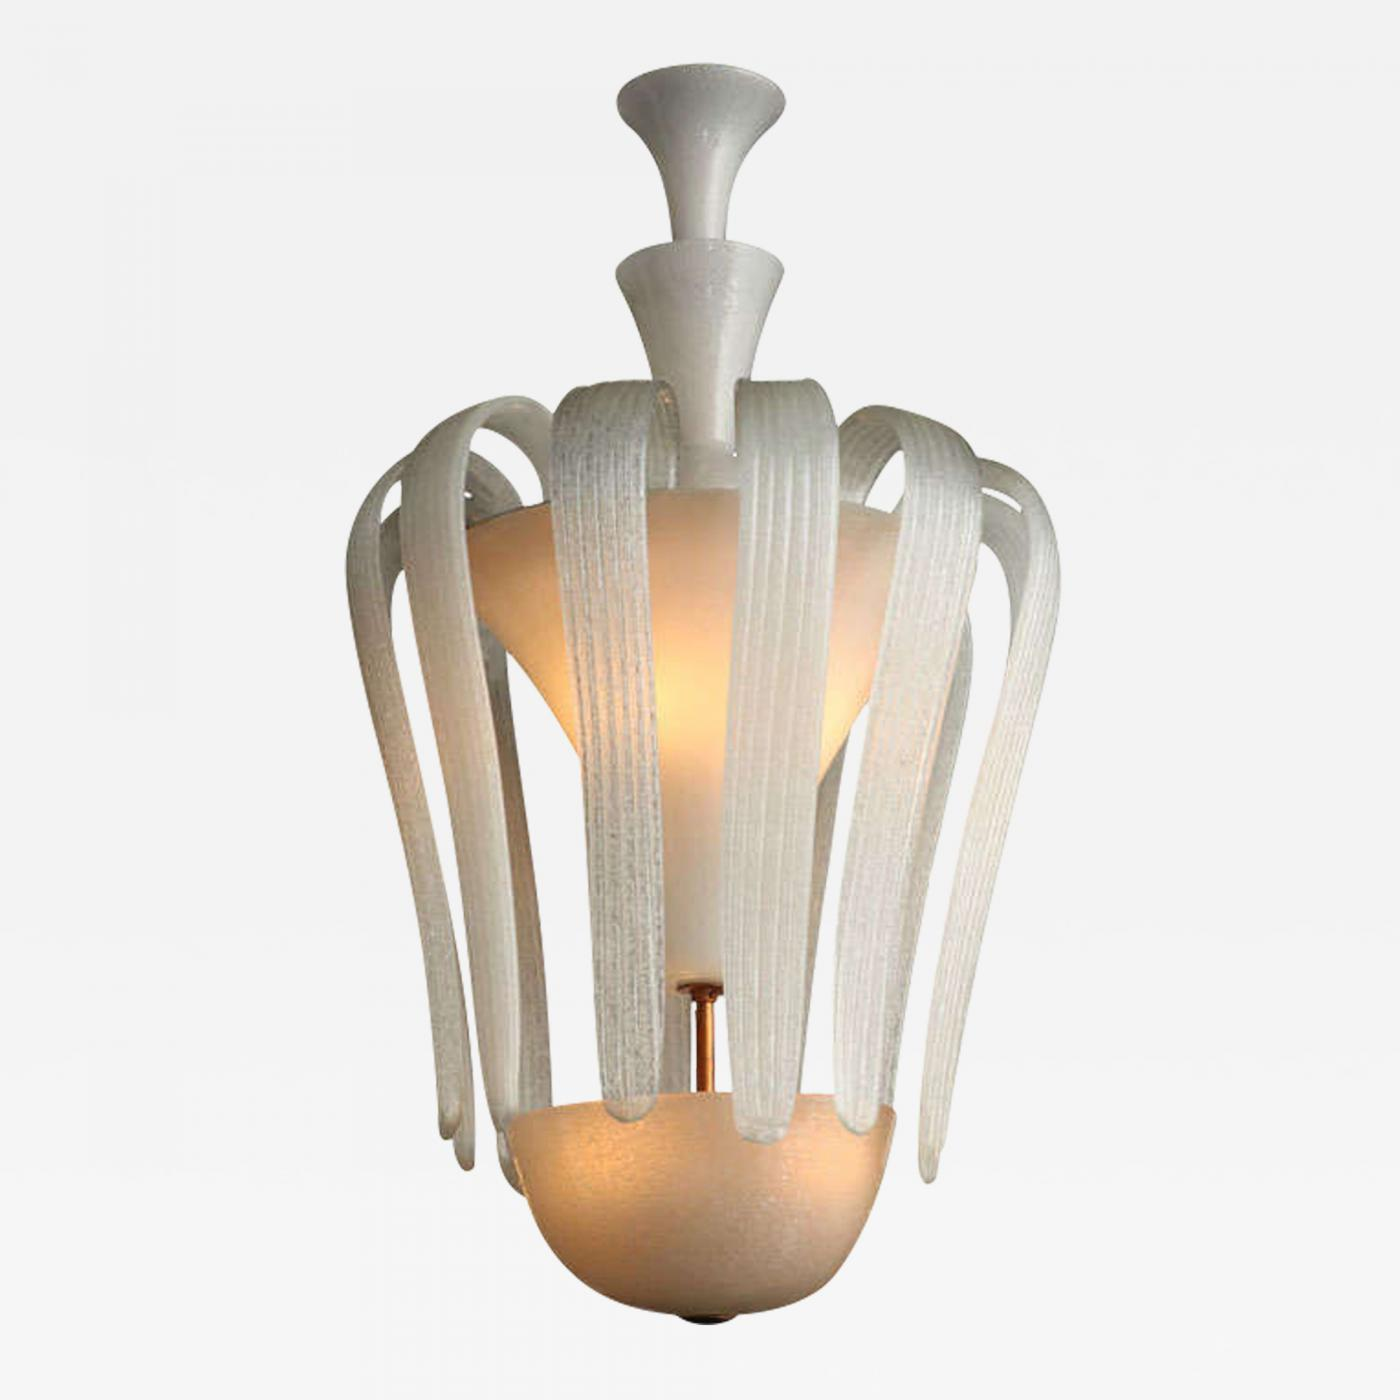 Venini venini chandelier made in venice in 1931 listings furniture lighting chandeliers and pendants aloadofball Image collections